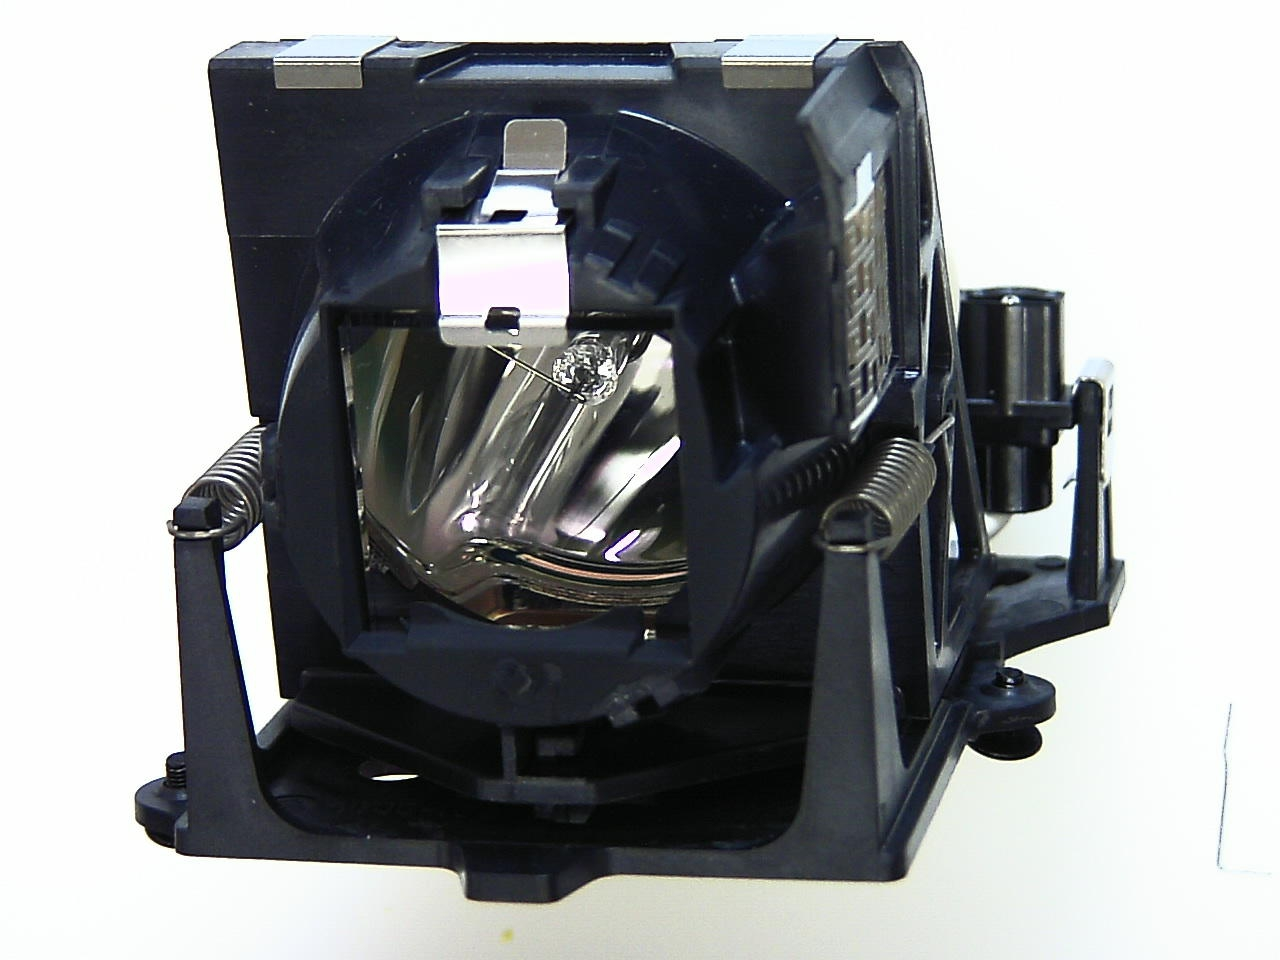 3D PERCEPTION 313-400-0003-00 Lamp Replacement for X 15e